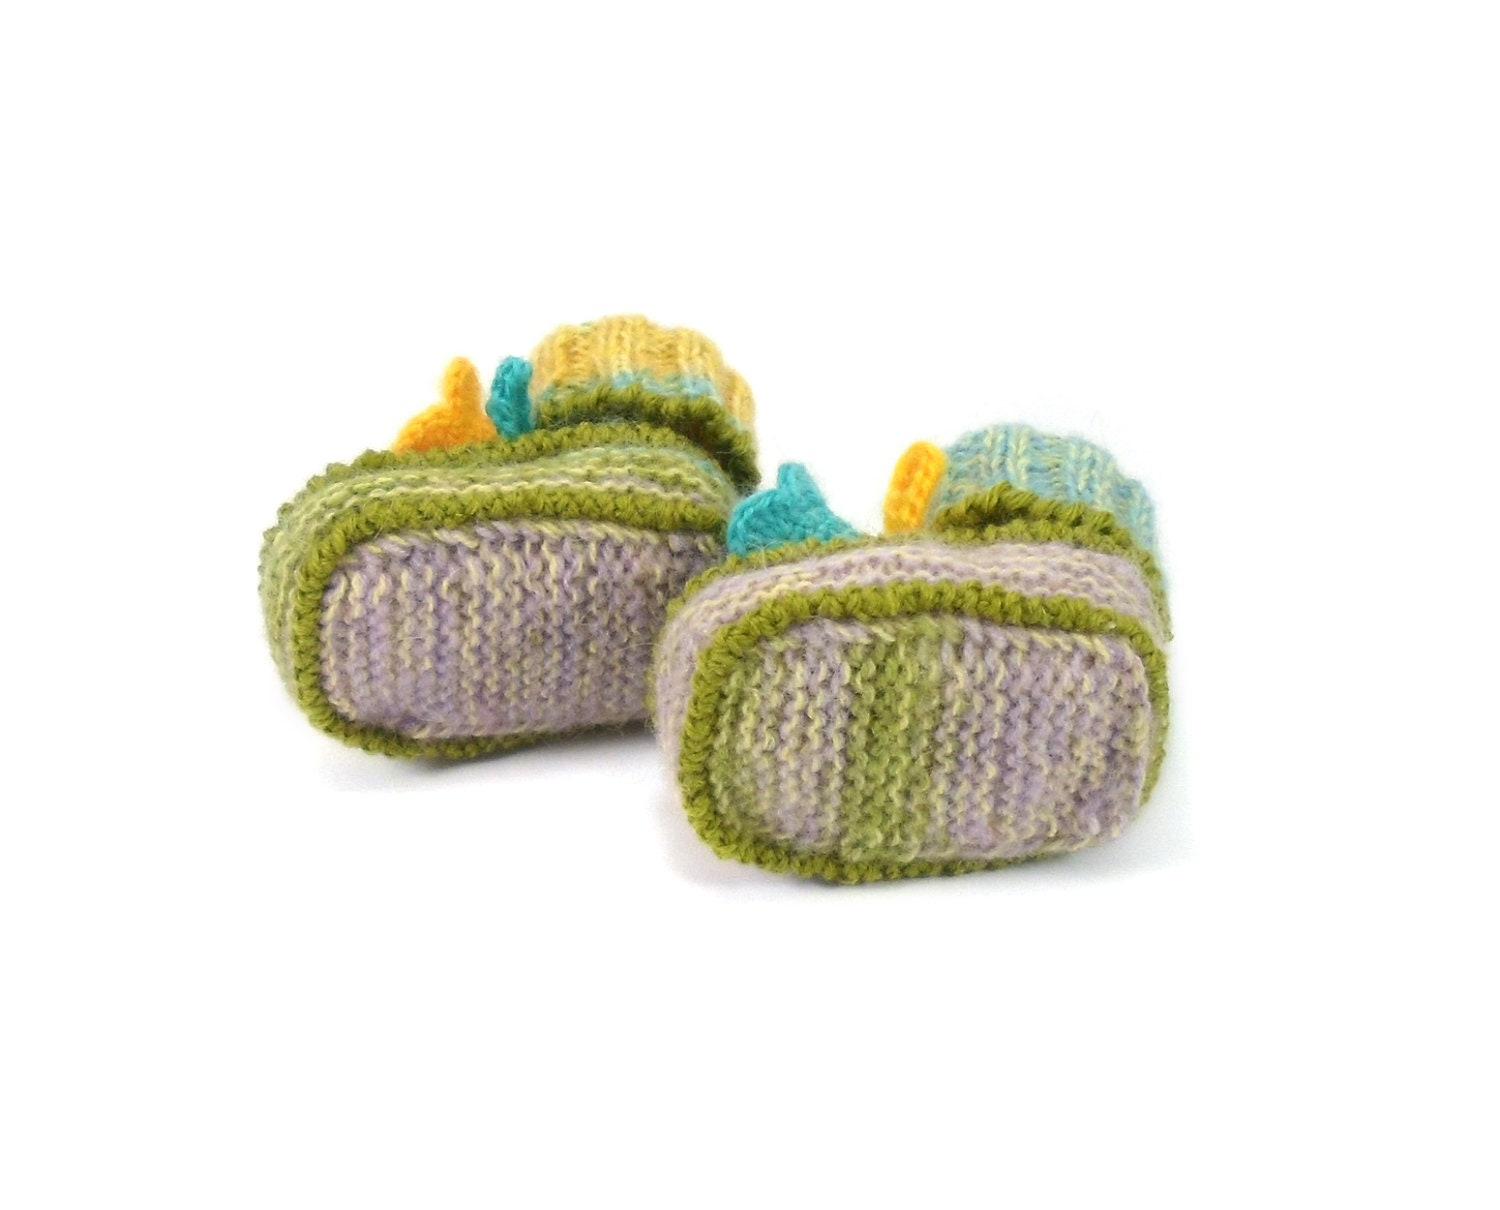 Knitted Baby Booties with Crochet Bell Flowers, Pastel Colors, 3 - 6 months